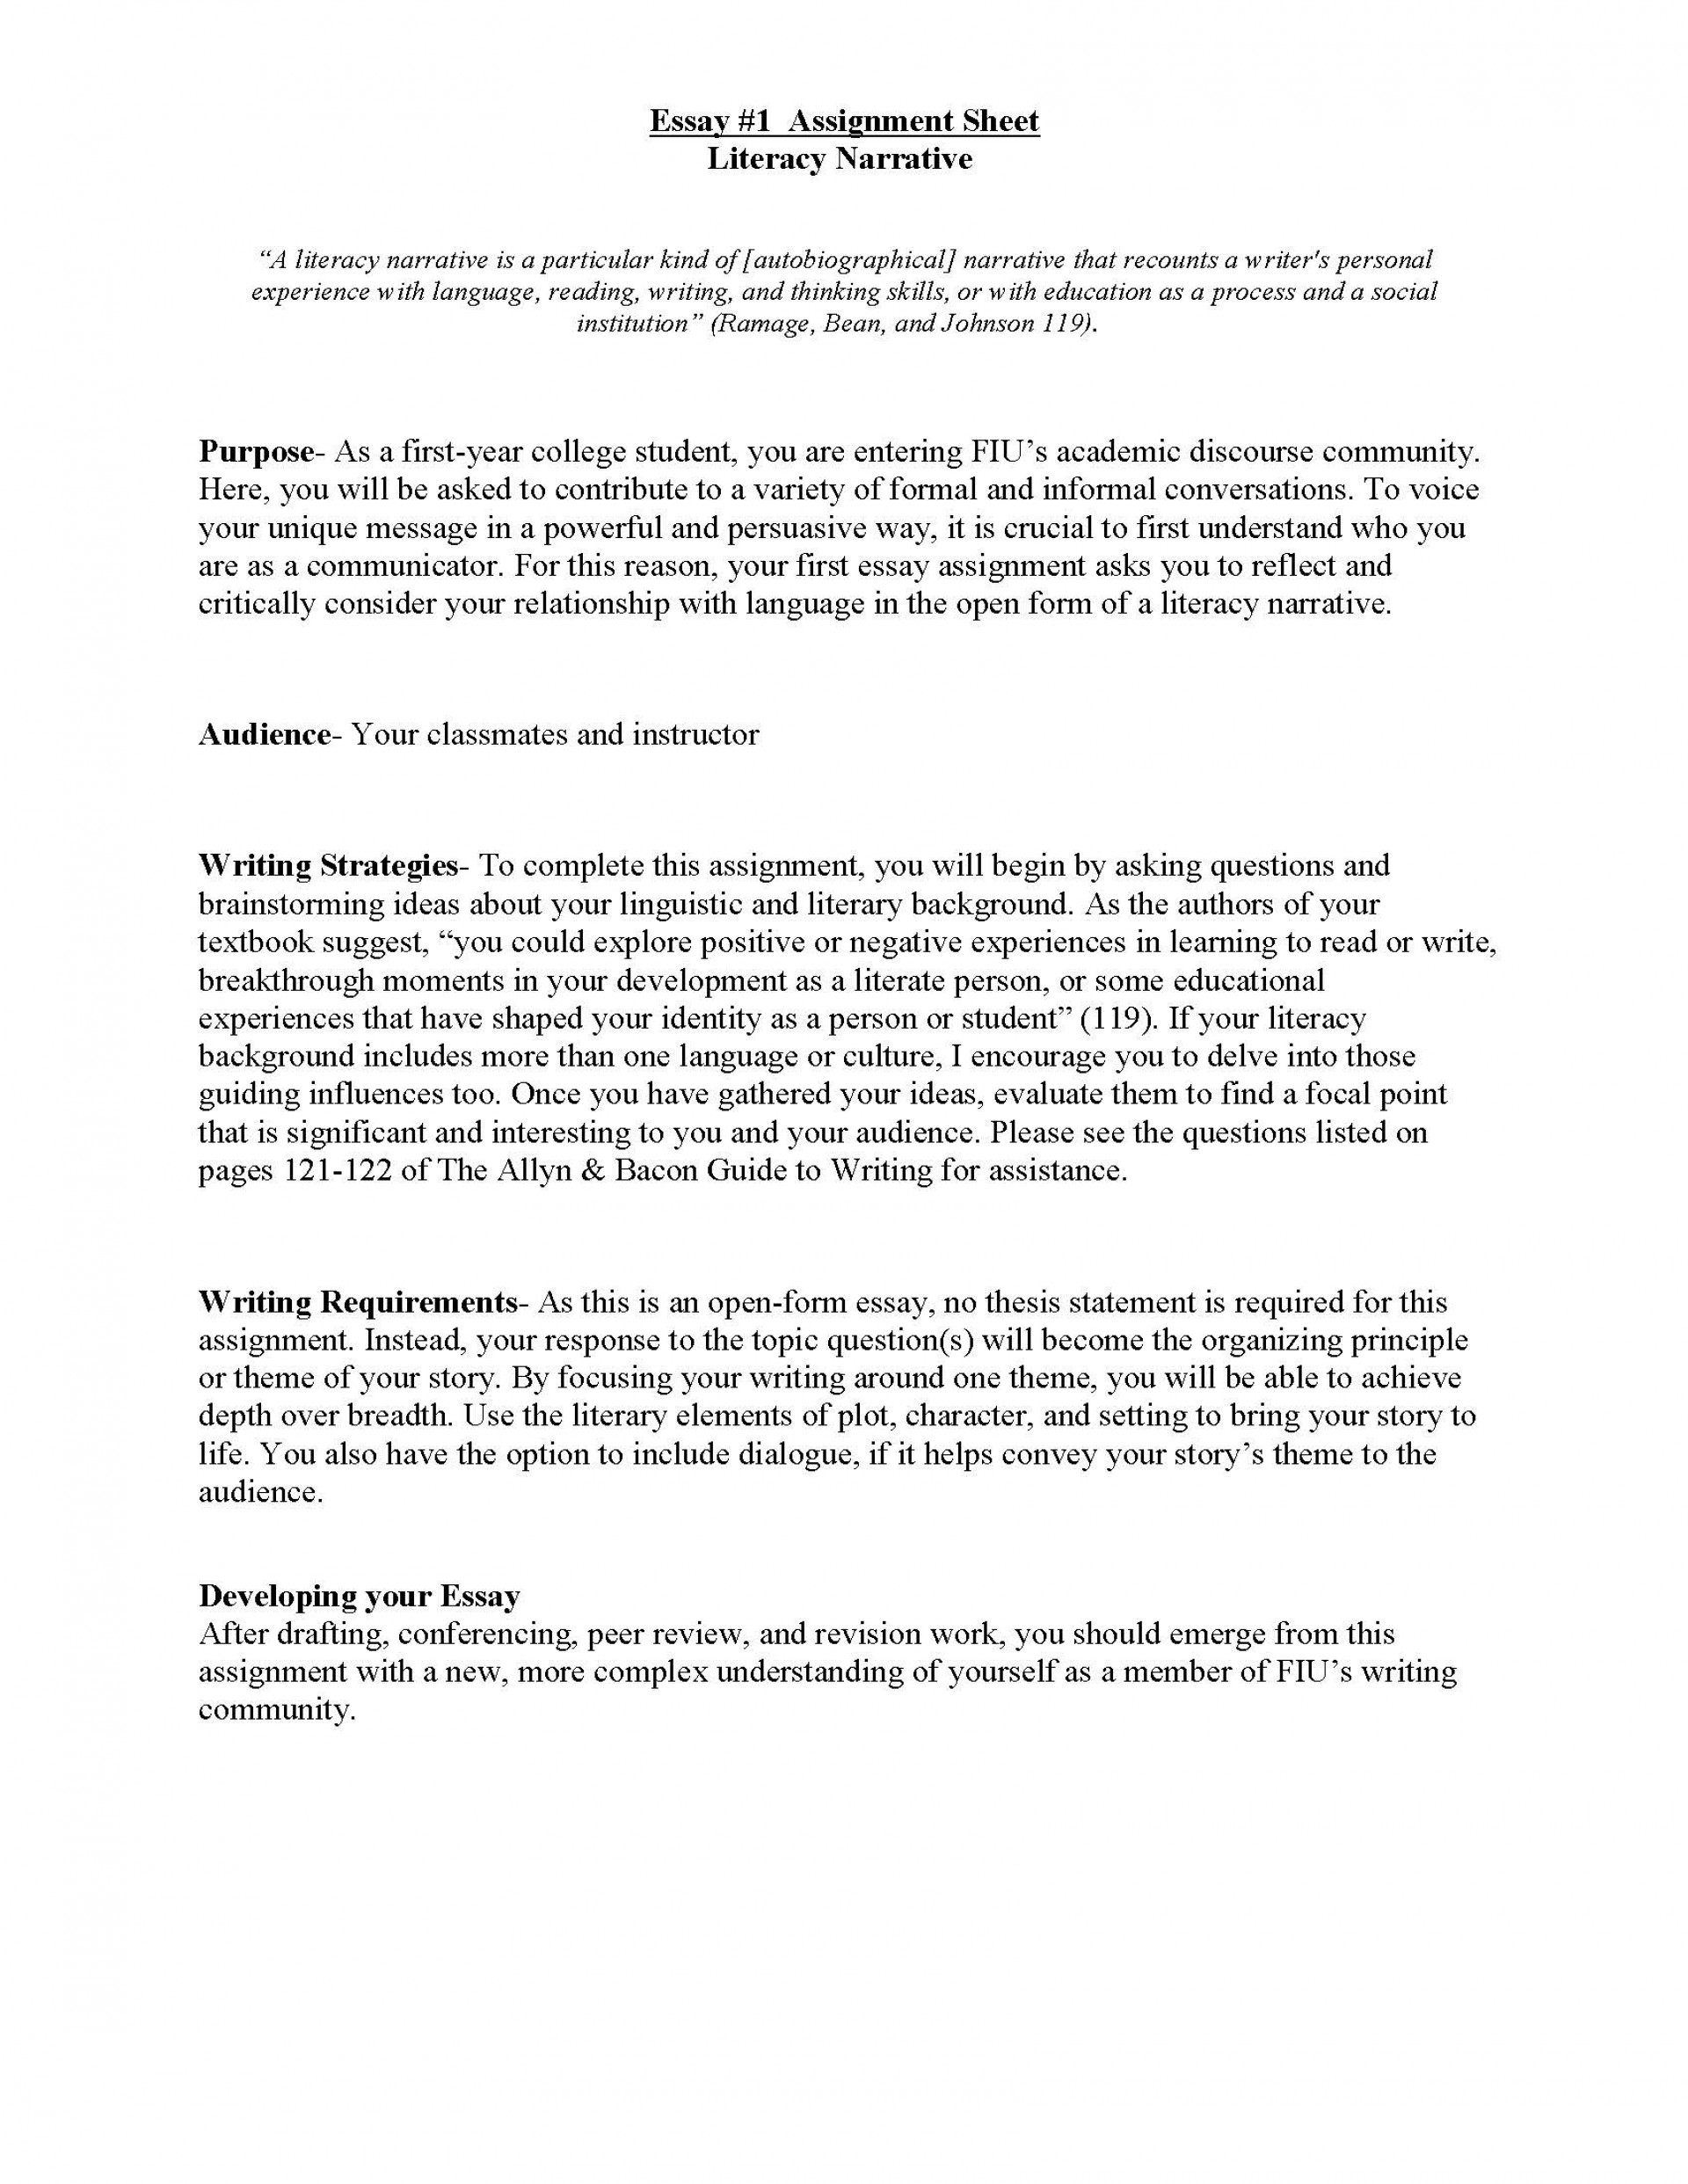 020 Essay Example Literacy Narrative Unit Assignment Spring 2012 Page 1 Fascinating Define Definition Of Writing Personal Narrative/descriptive 1920